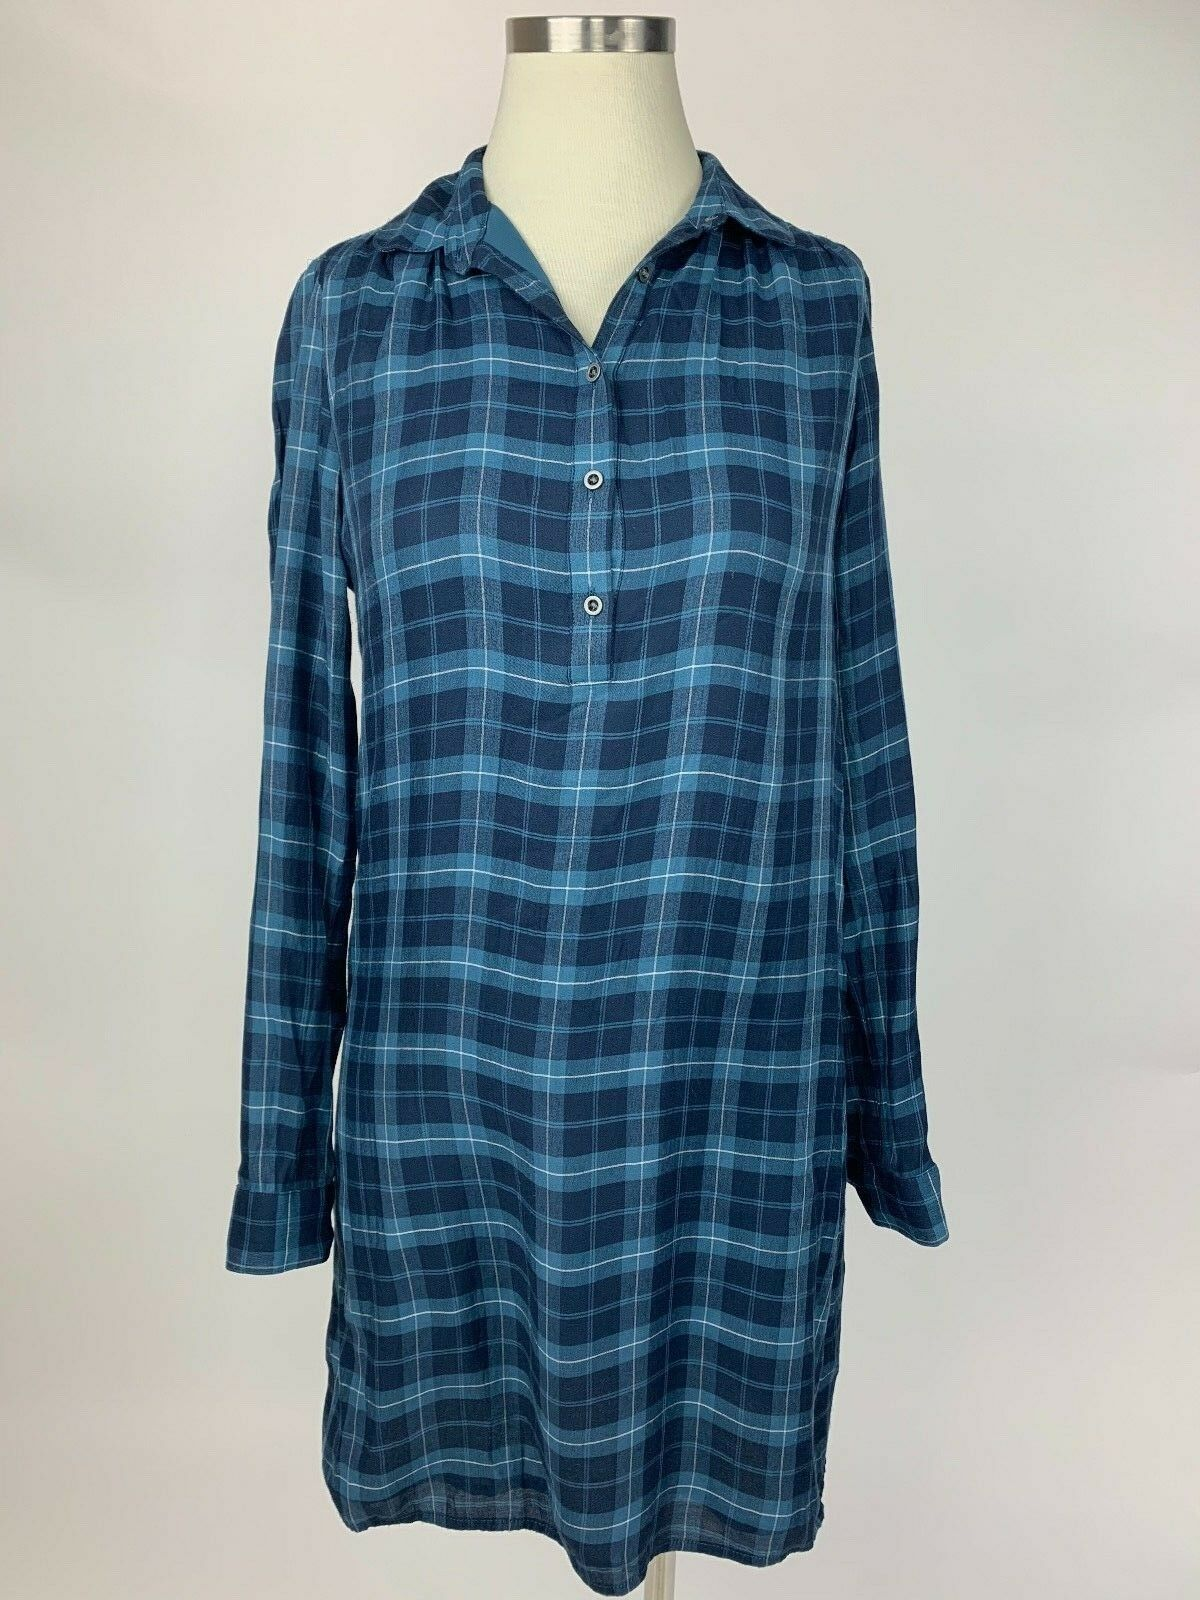 e9431f257f35 Ann Taylor Loft Navy bluee Light bluee Plaid Henley Shirt Dress XS Nice